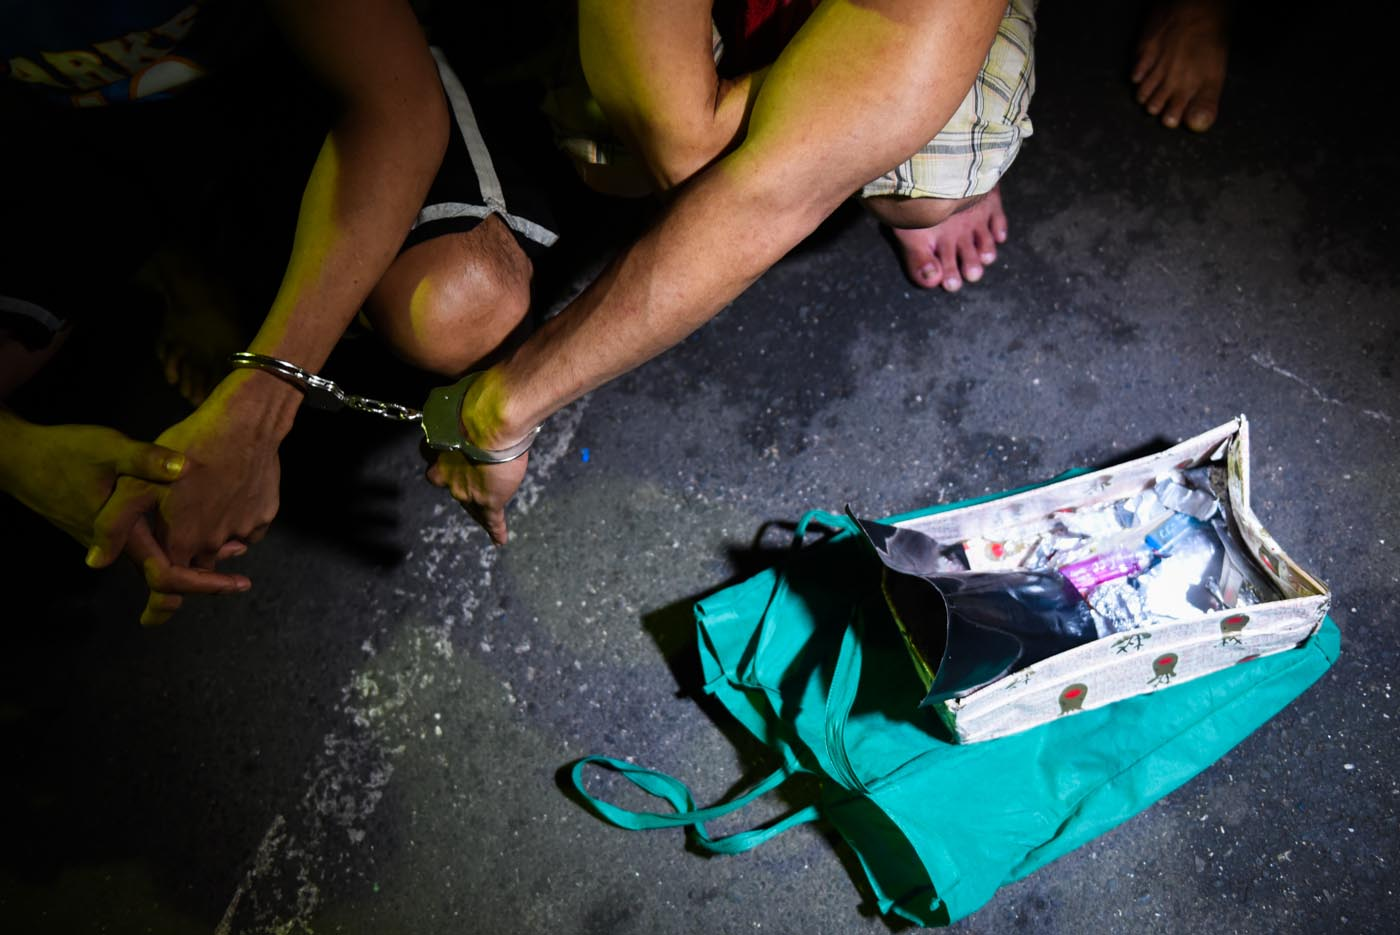 illegal drug use illegal prostitution and money So the problem of illegal drug use, illegal prostitution and money laundering are much deeper than anyone realizes and the solutions discussed in this paper have failed and new ones are sure to fail as well unless something changes.